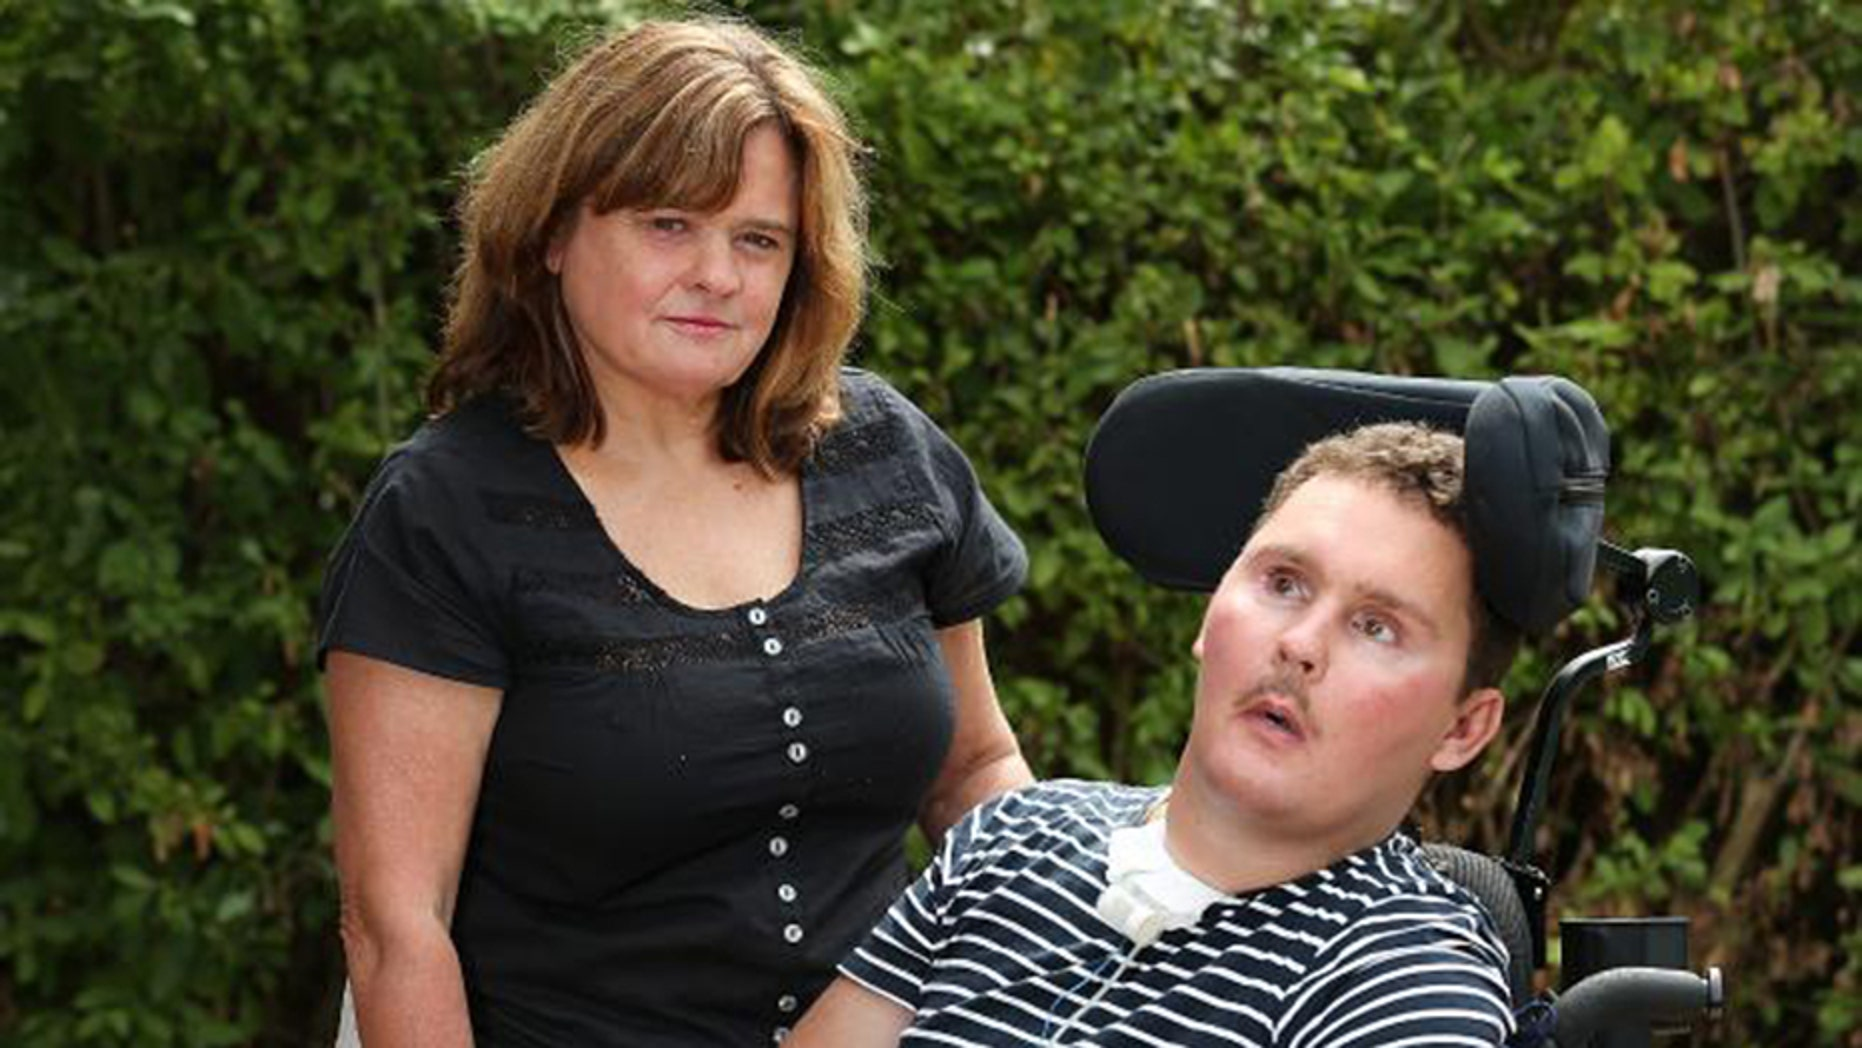 Man who became paraplegic after swallowing garden slug dies aged 28